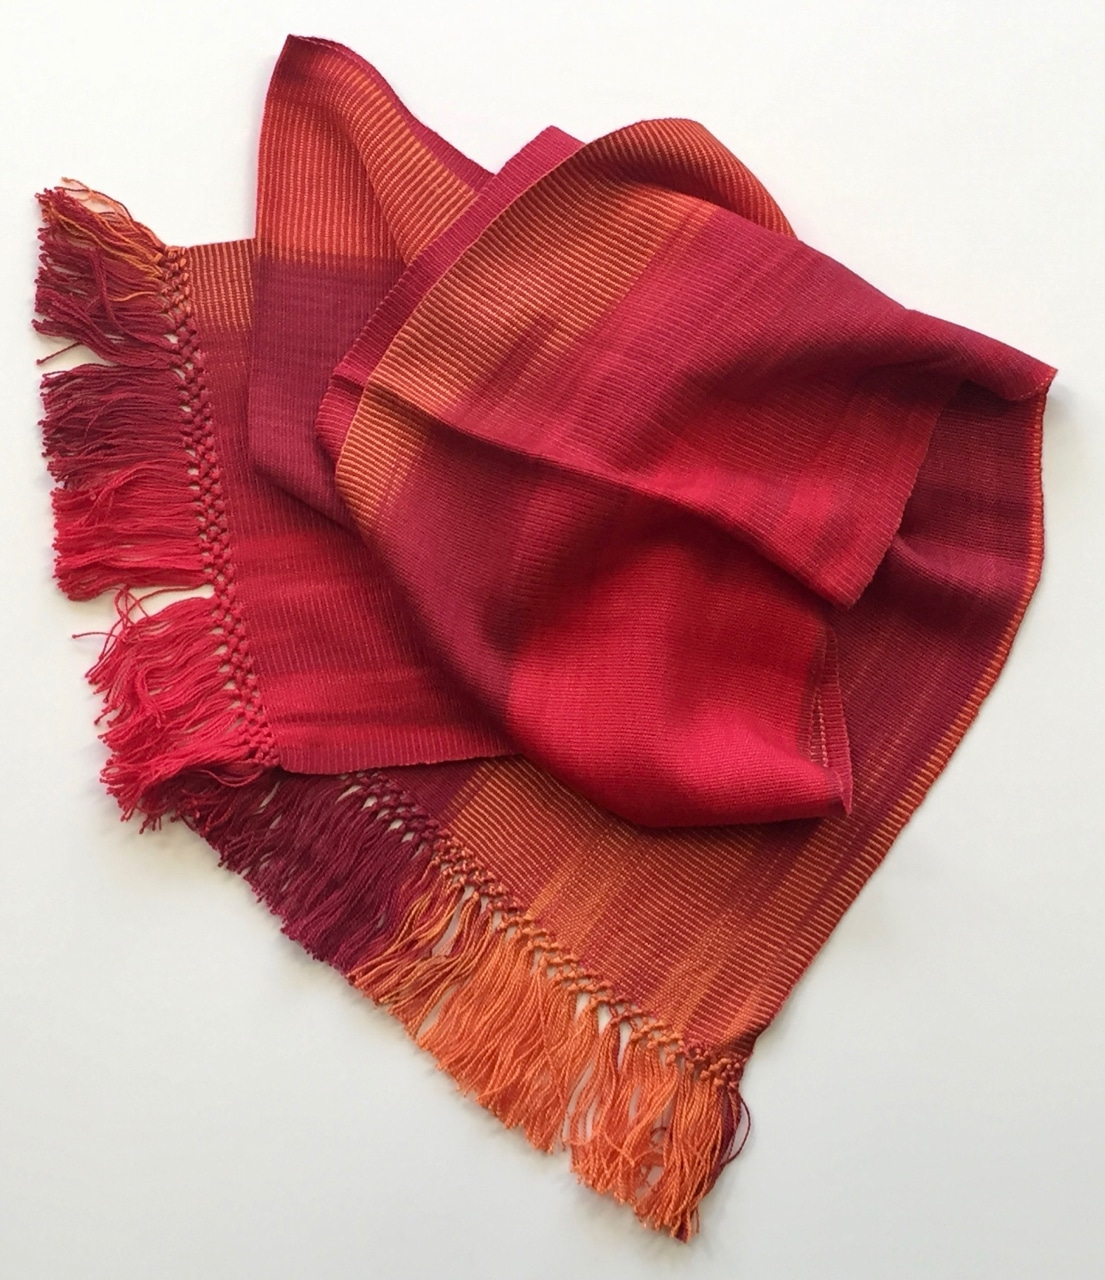 Red and Orange - Lightweight Bamboo Handwoven Scarf 8